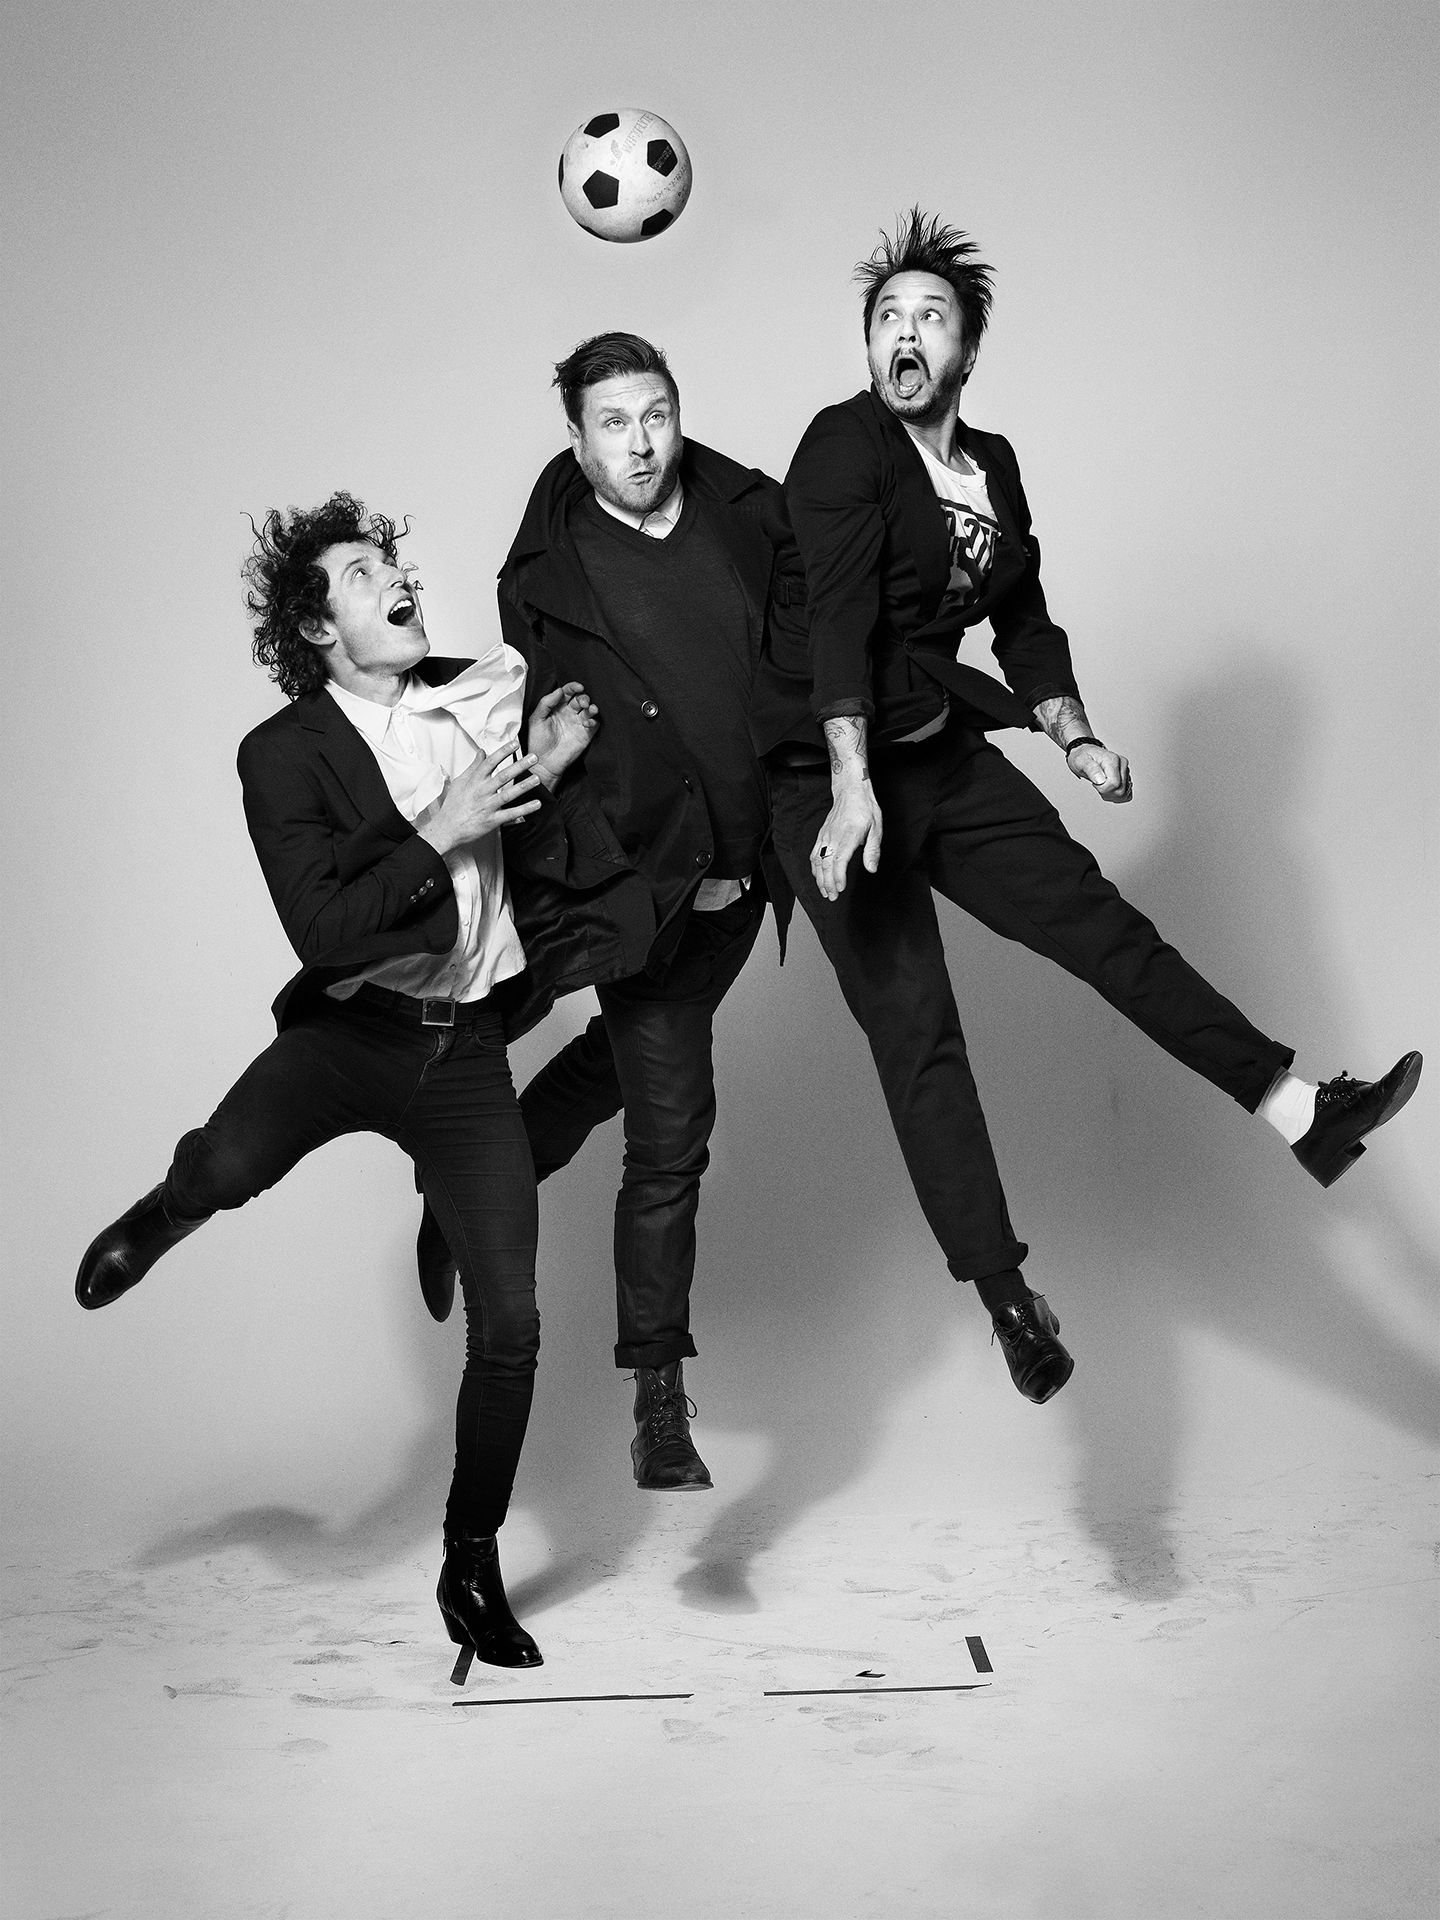 We Are Wolves music group photographed jumping in the air by Jocelyn Michel for JUMP personal series